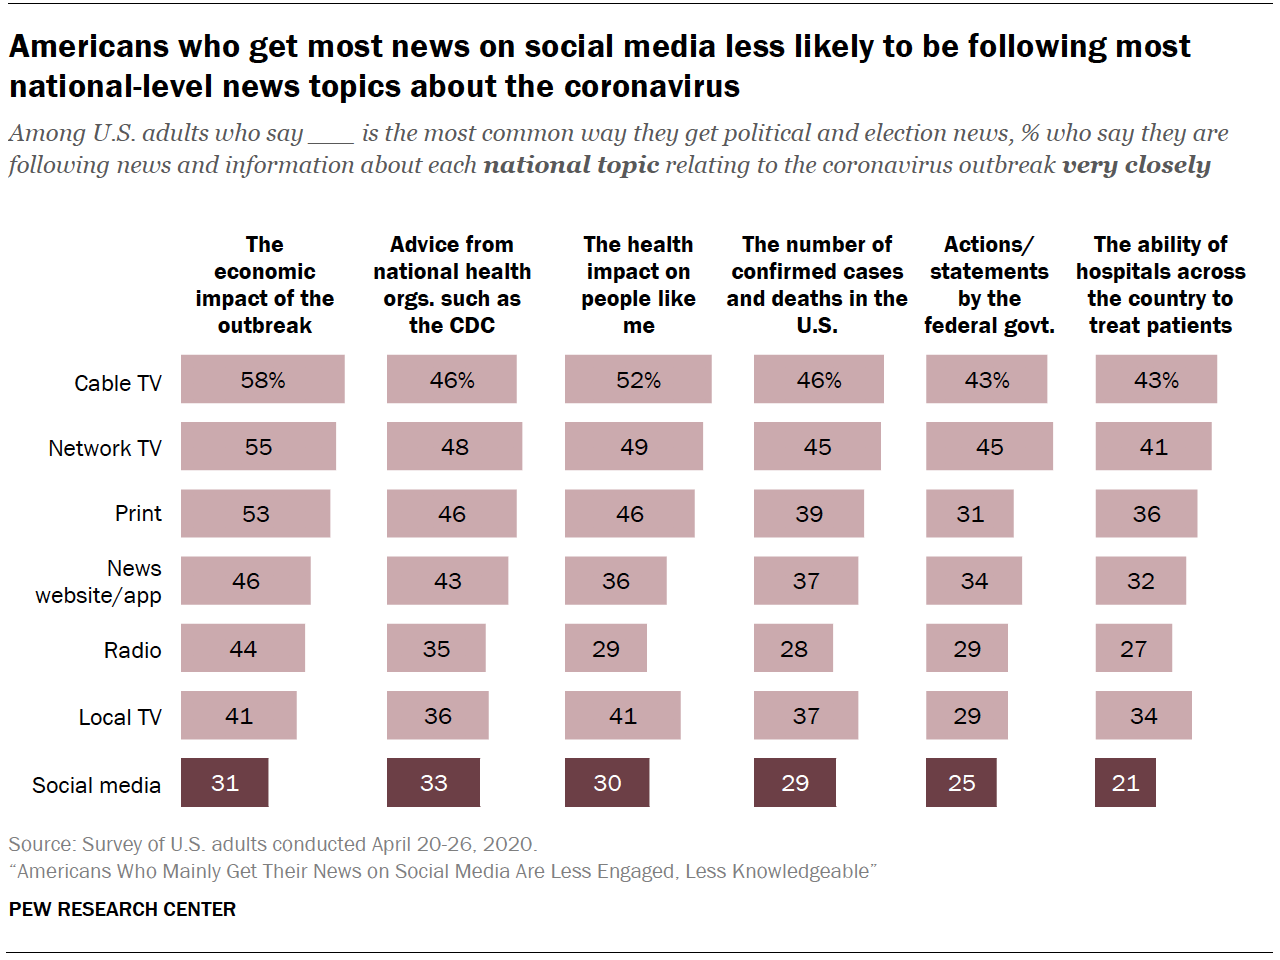 Chart shows Americans who get most news on social media less likely to be following most national-level news topics about the coronavirus